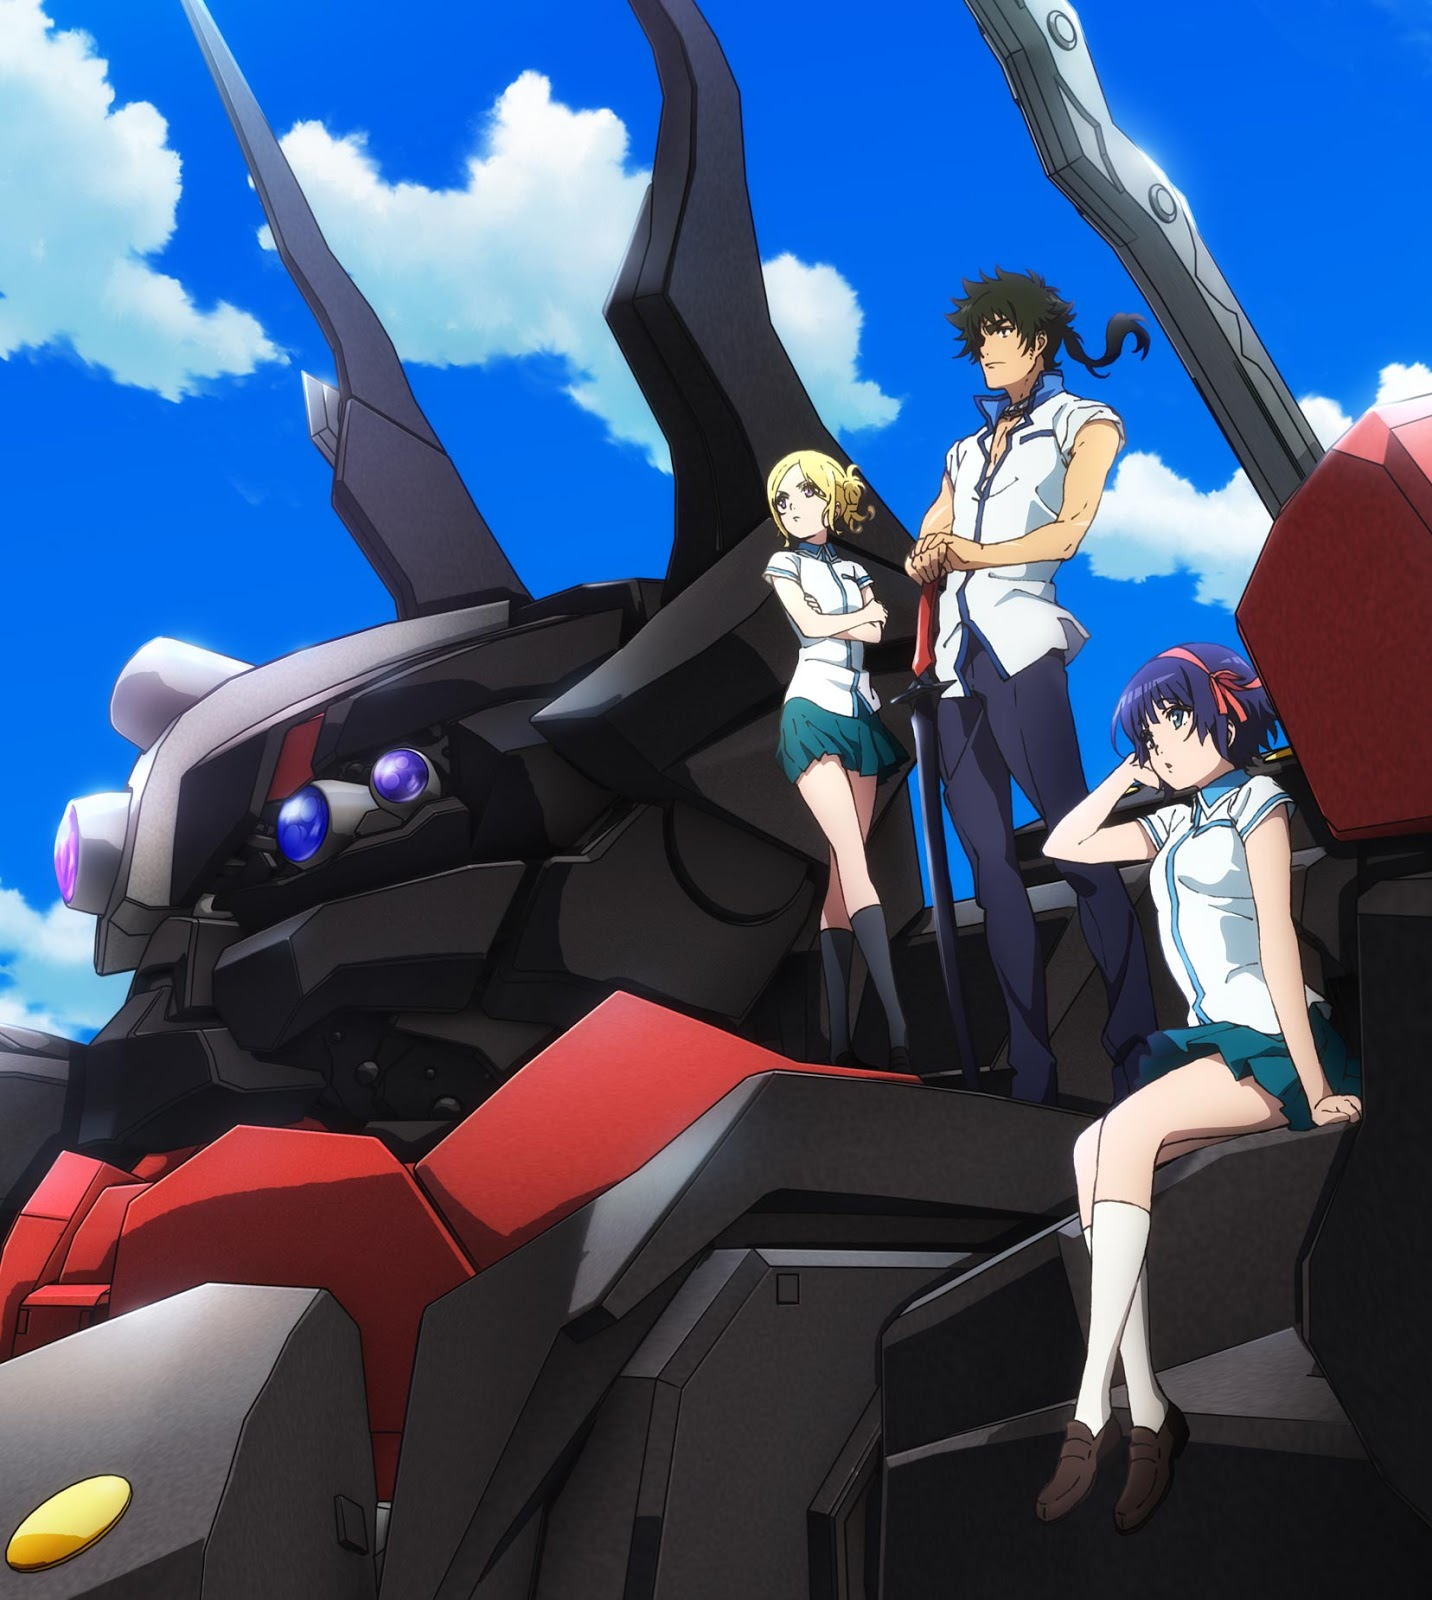 the robros kuromukuro new mecha anime